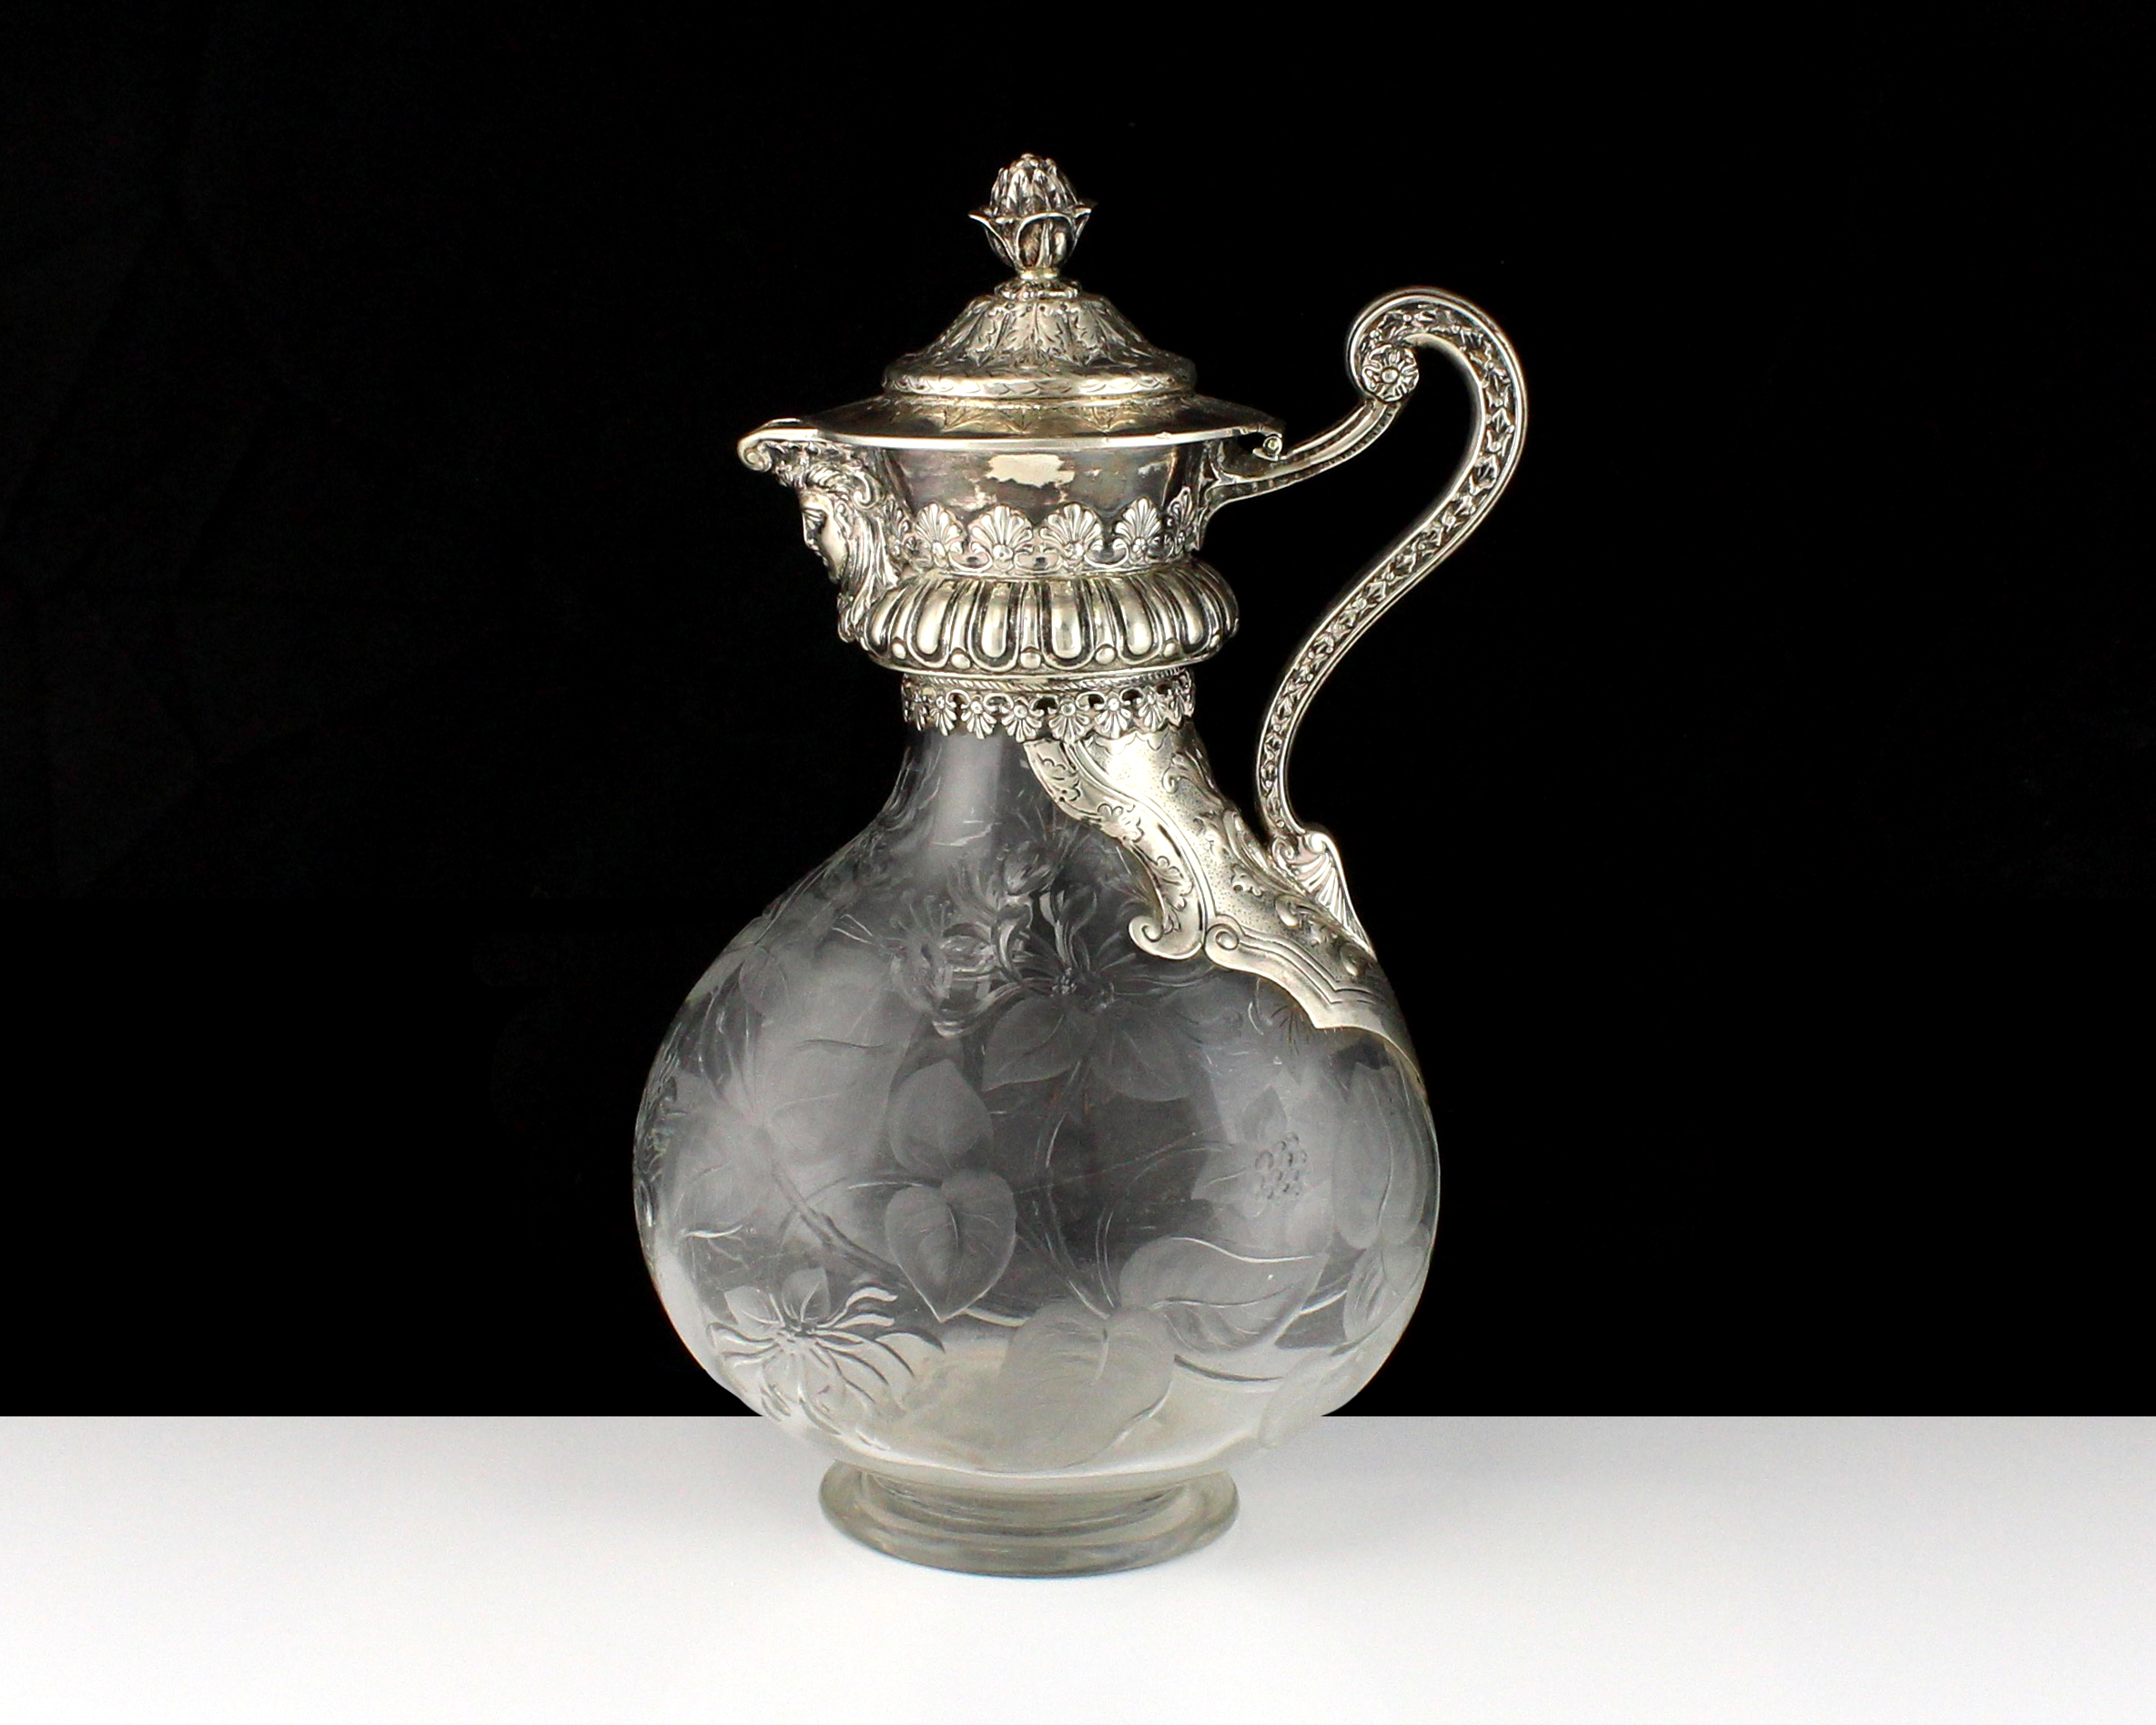 Los 61 - An antique Victorian Sterling Silver mounted claret jug by Mappin & Webb (J N Mappin), London 1886